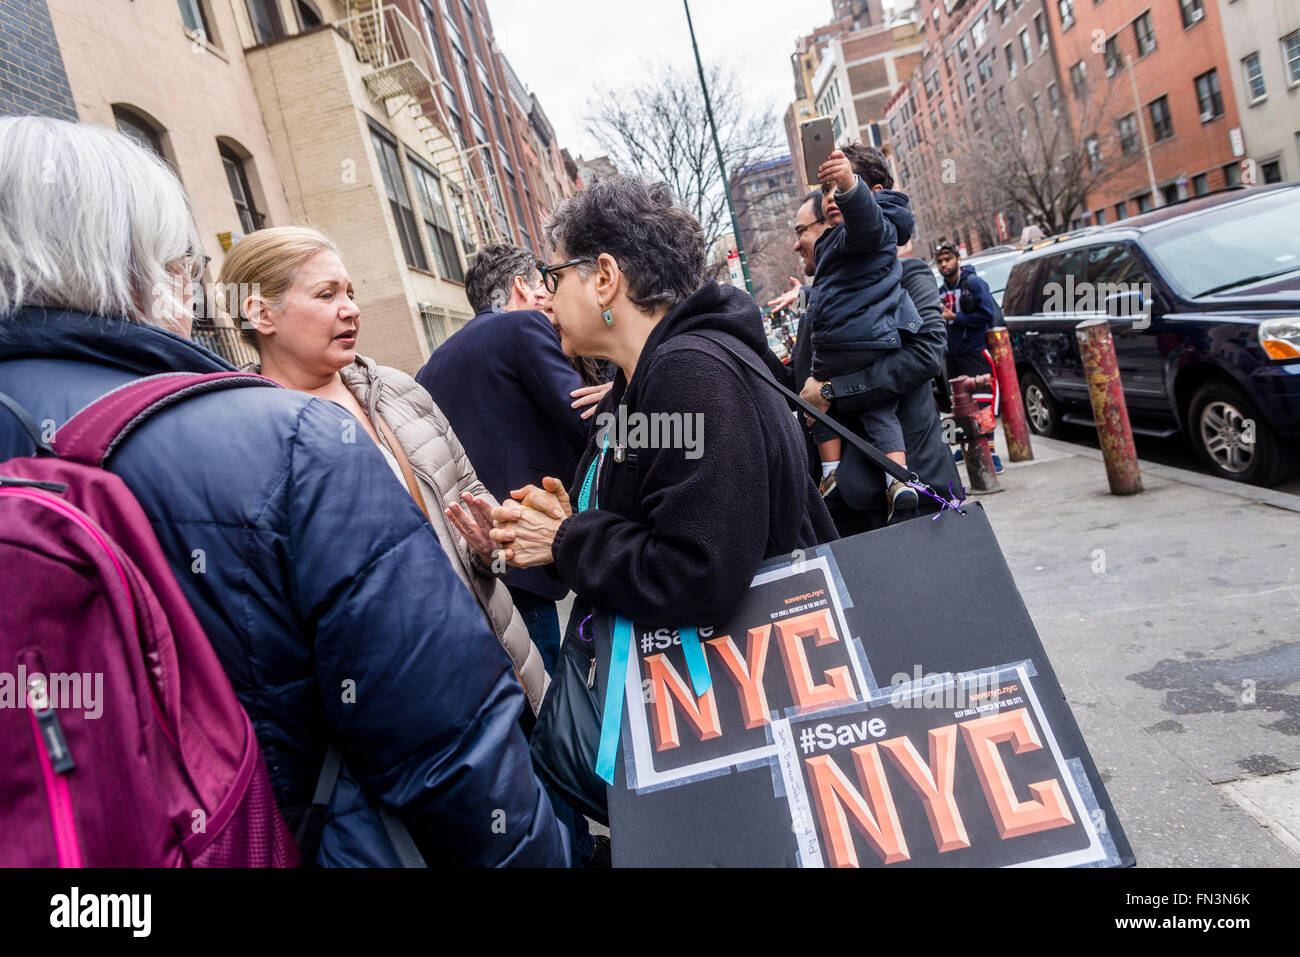 New York, NY - 13 March 2016 Protesters rally outside  an Associated supermarket on West 14th Street. The supermarket, - Stock Image